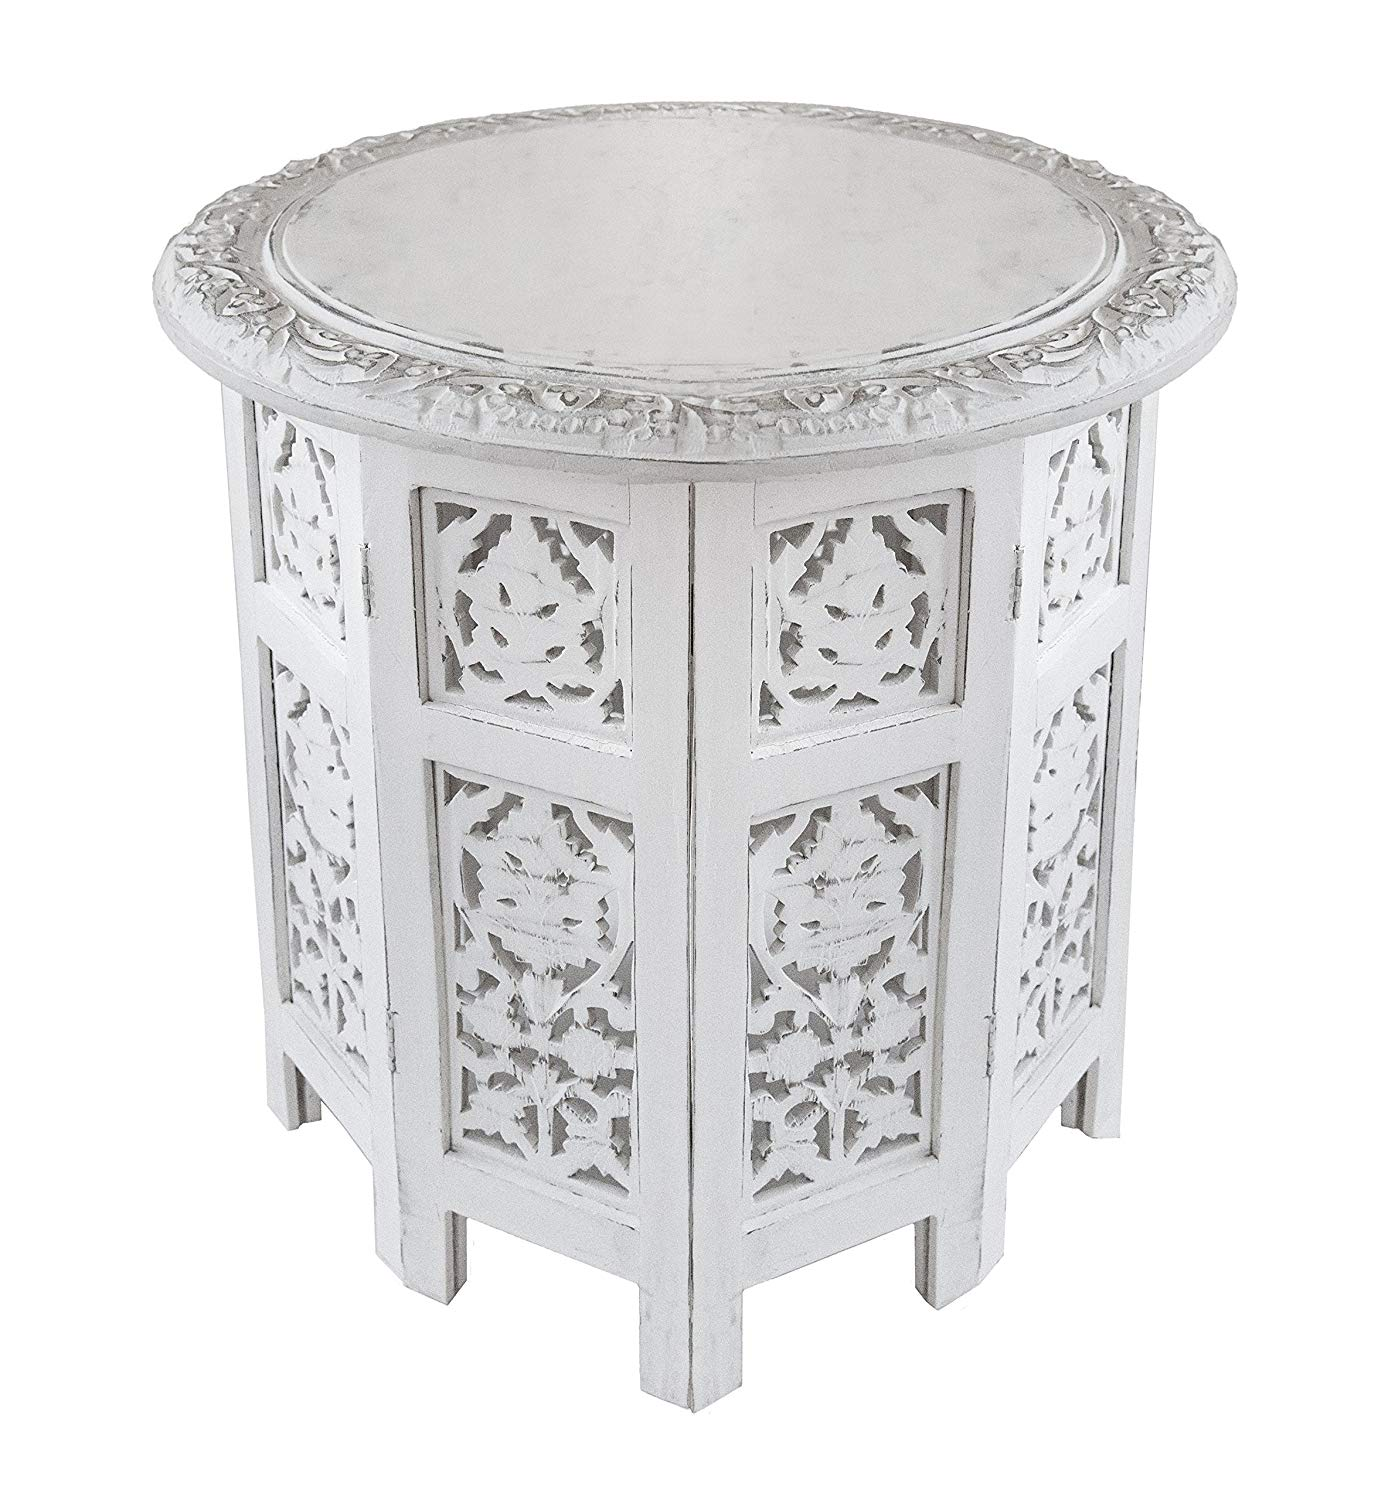 cotton craft jaipur solid wood handcrafted carved antique round accent table folding coffee white inch top high kitchen ikea storage unit large patio umbrella farmhouse style